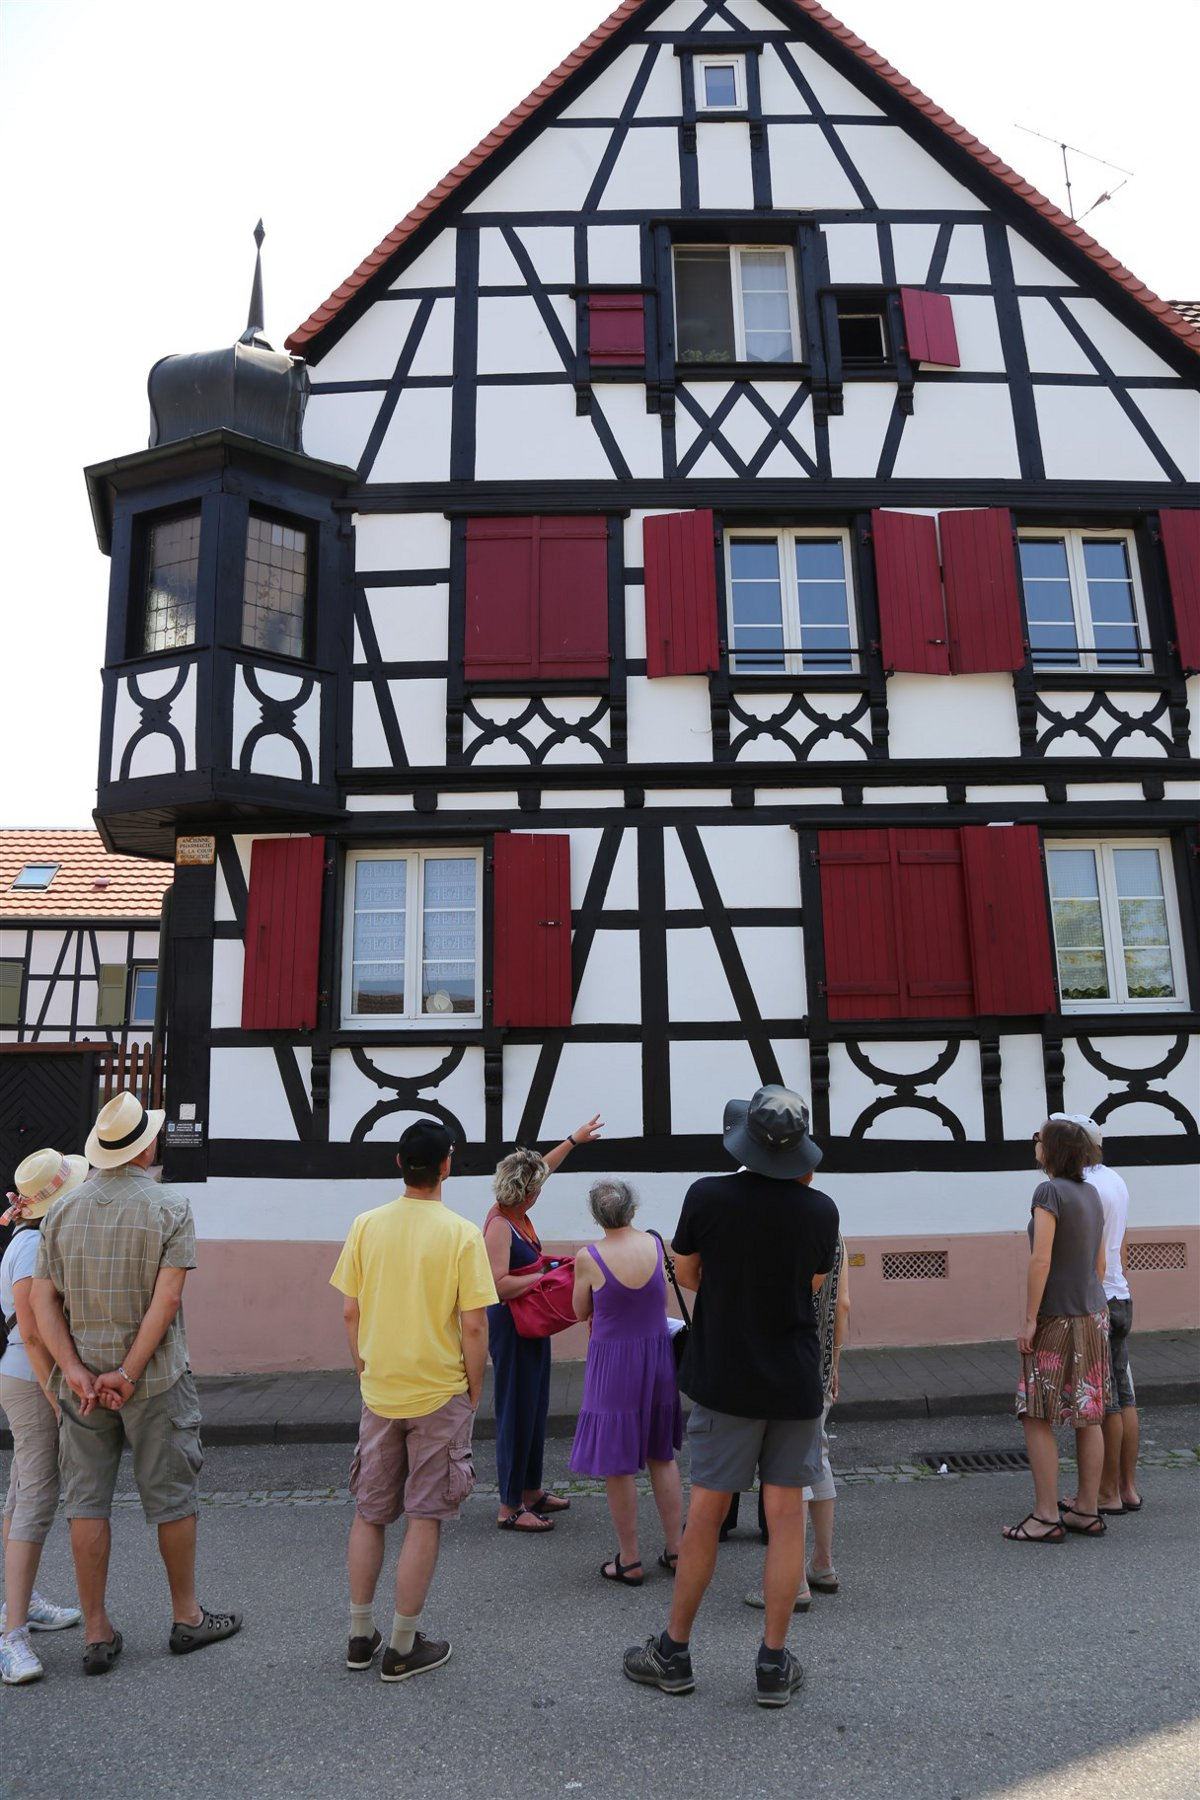 https://apps.tourisme-alsace.info/photos/essais/photos/311000033_1.jpg